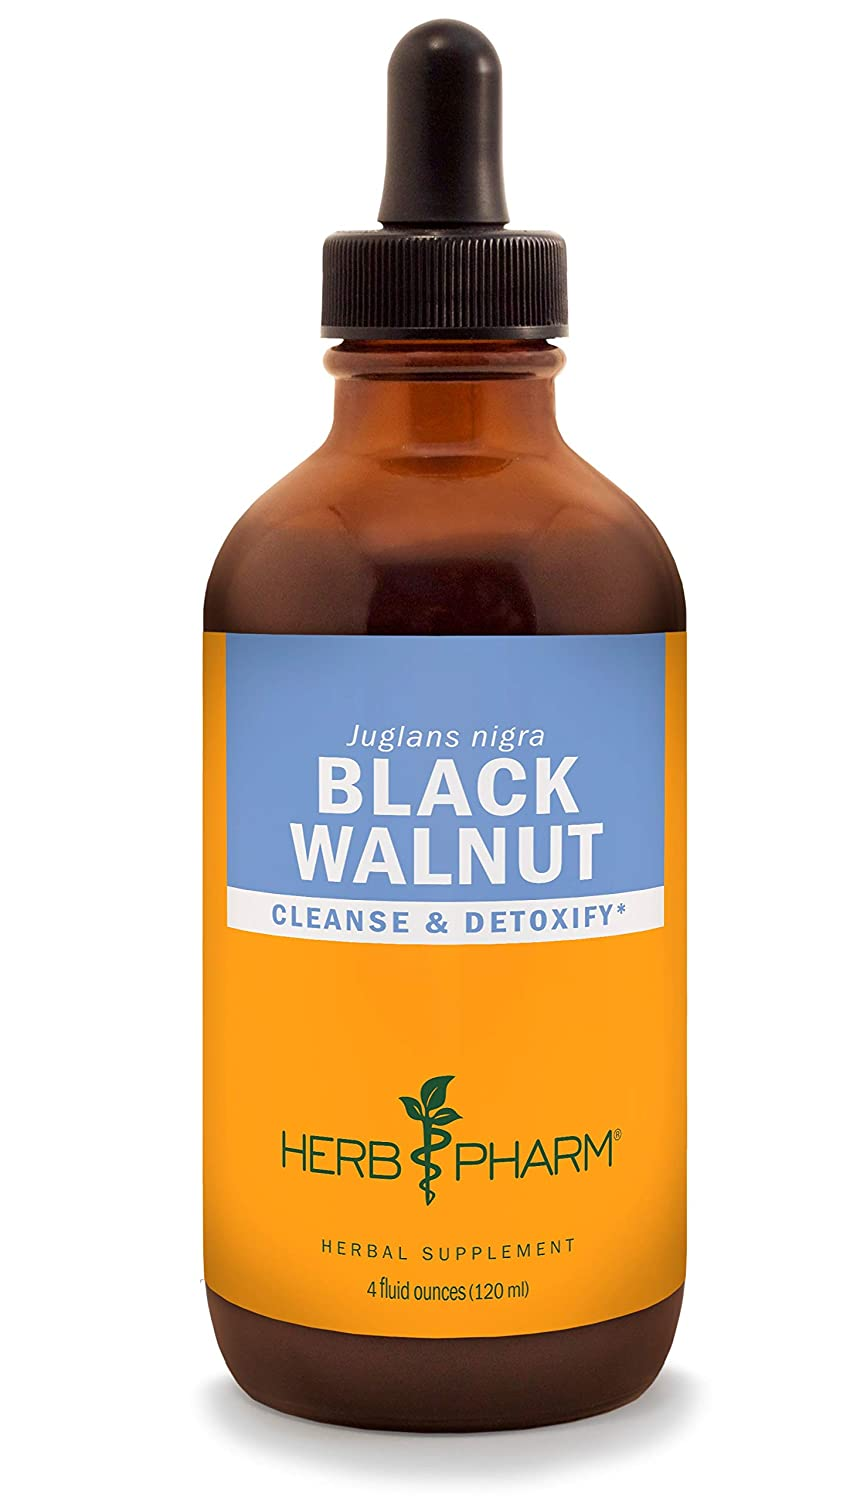 Herb Pharm Black Walnut Liquid Extract for Cleansing and Detoxifying – 4 Ounce